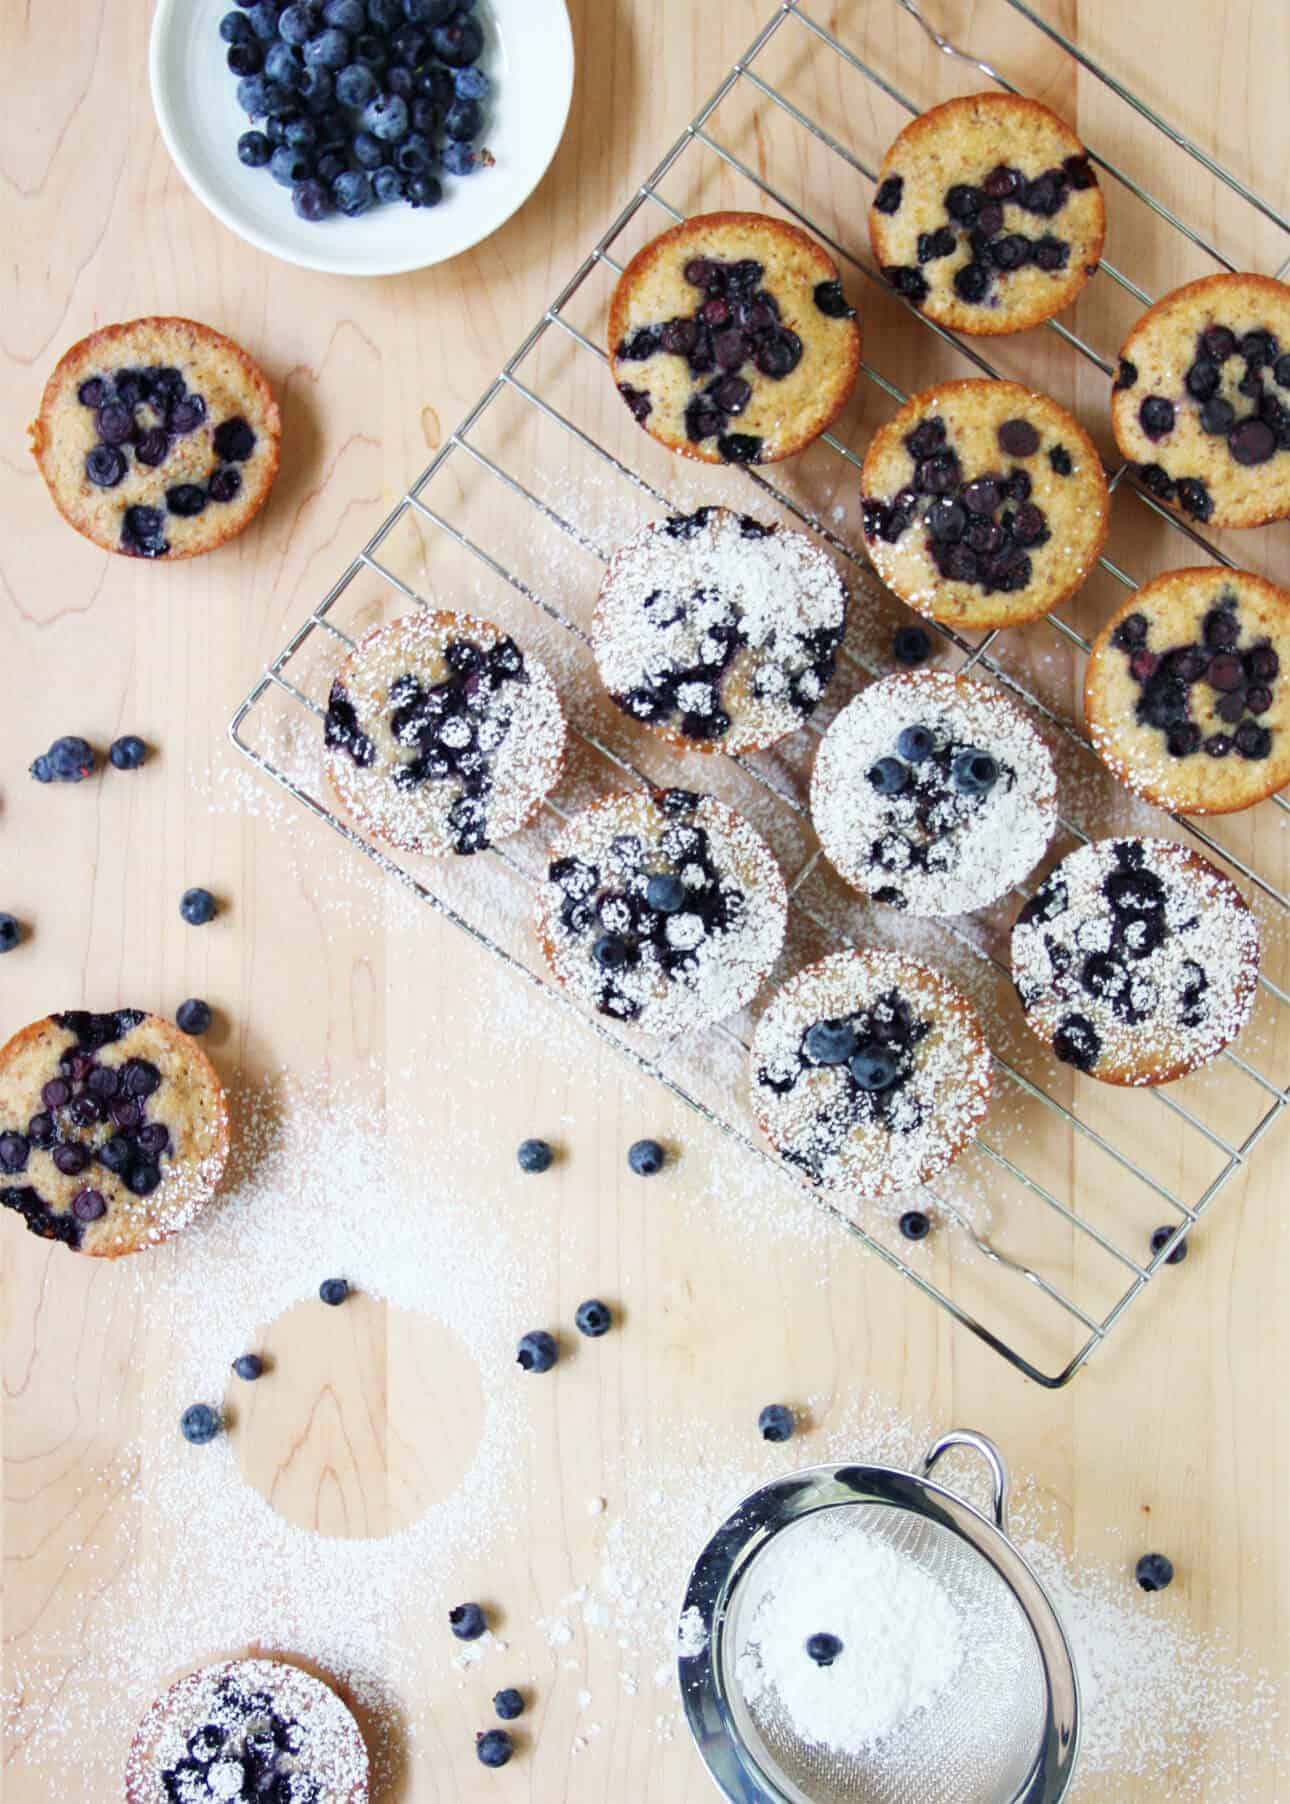 Wild Blueberry Financiers